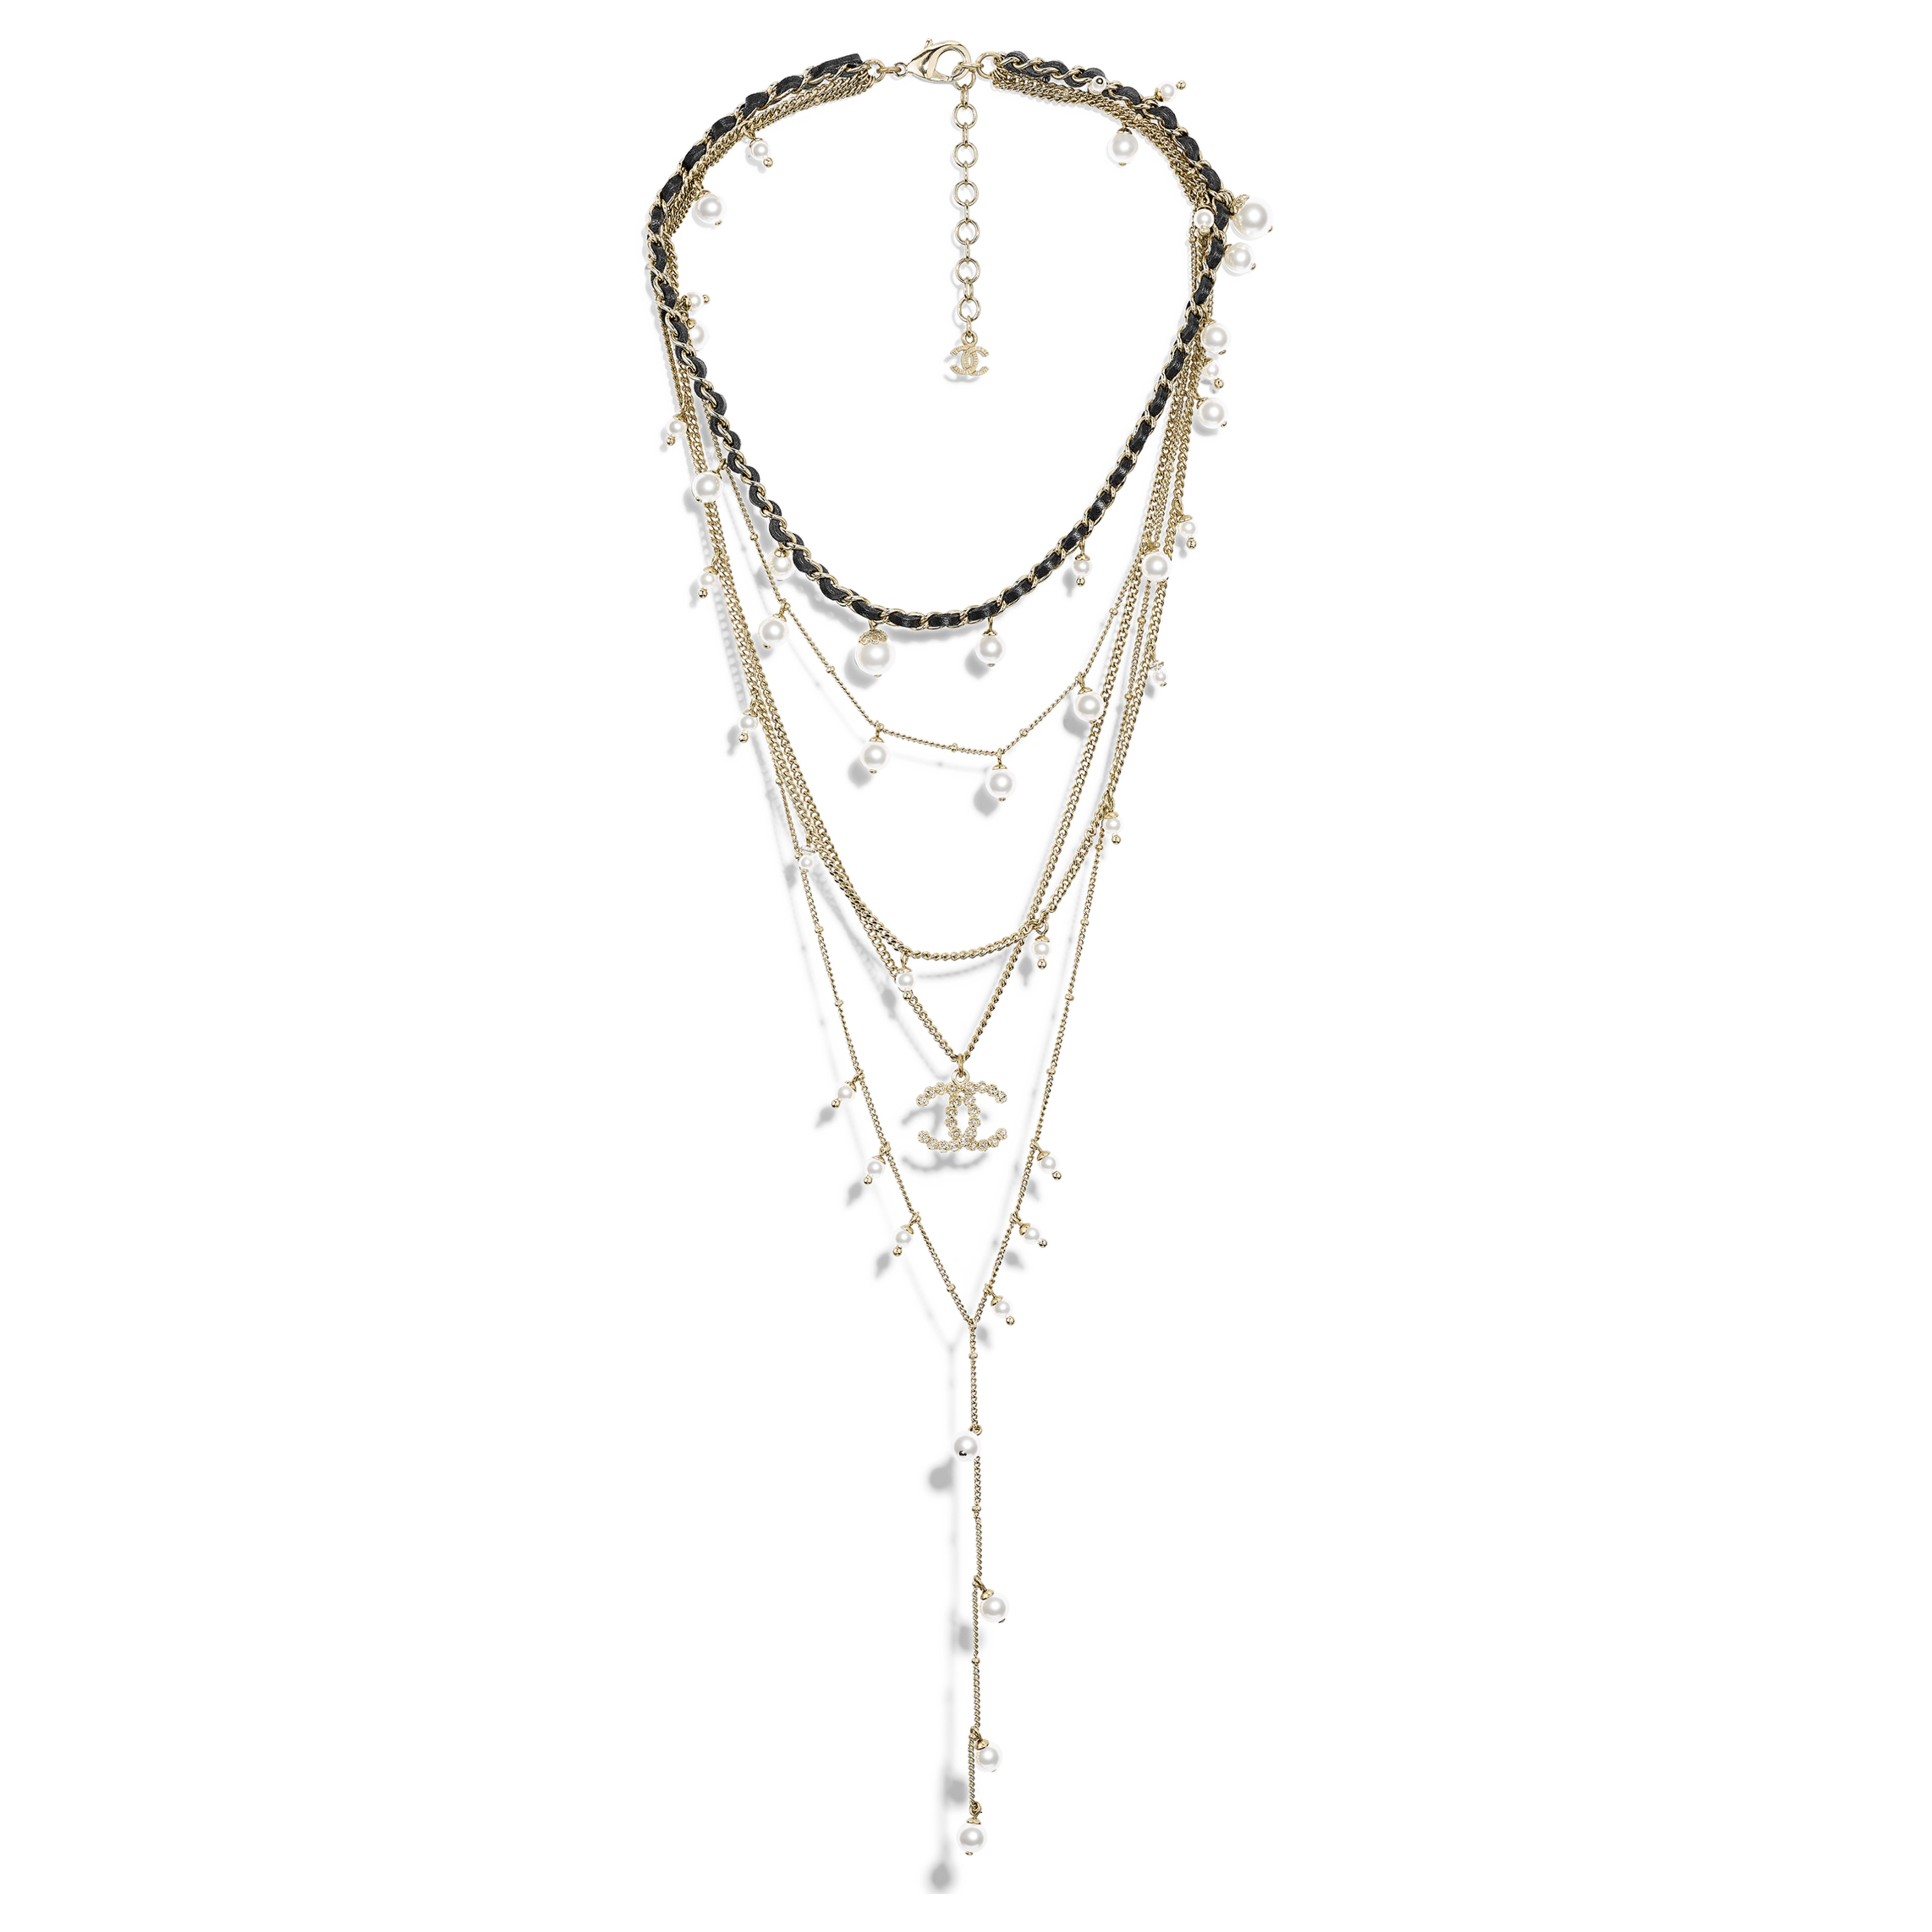 Necklace - Gold, Pearly White, Crystal & Black - Metal, Glass Pearls, Strass & Calfskin - Default view - see full sized version